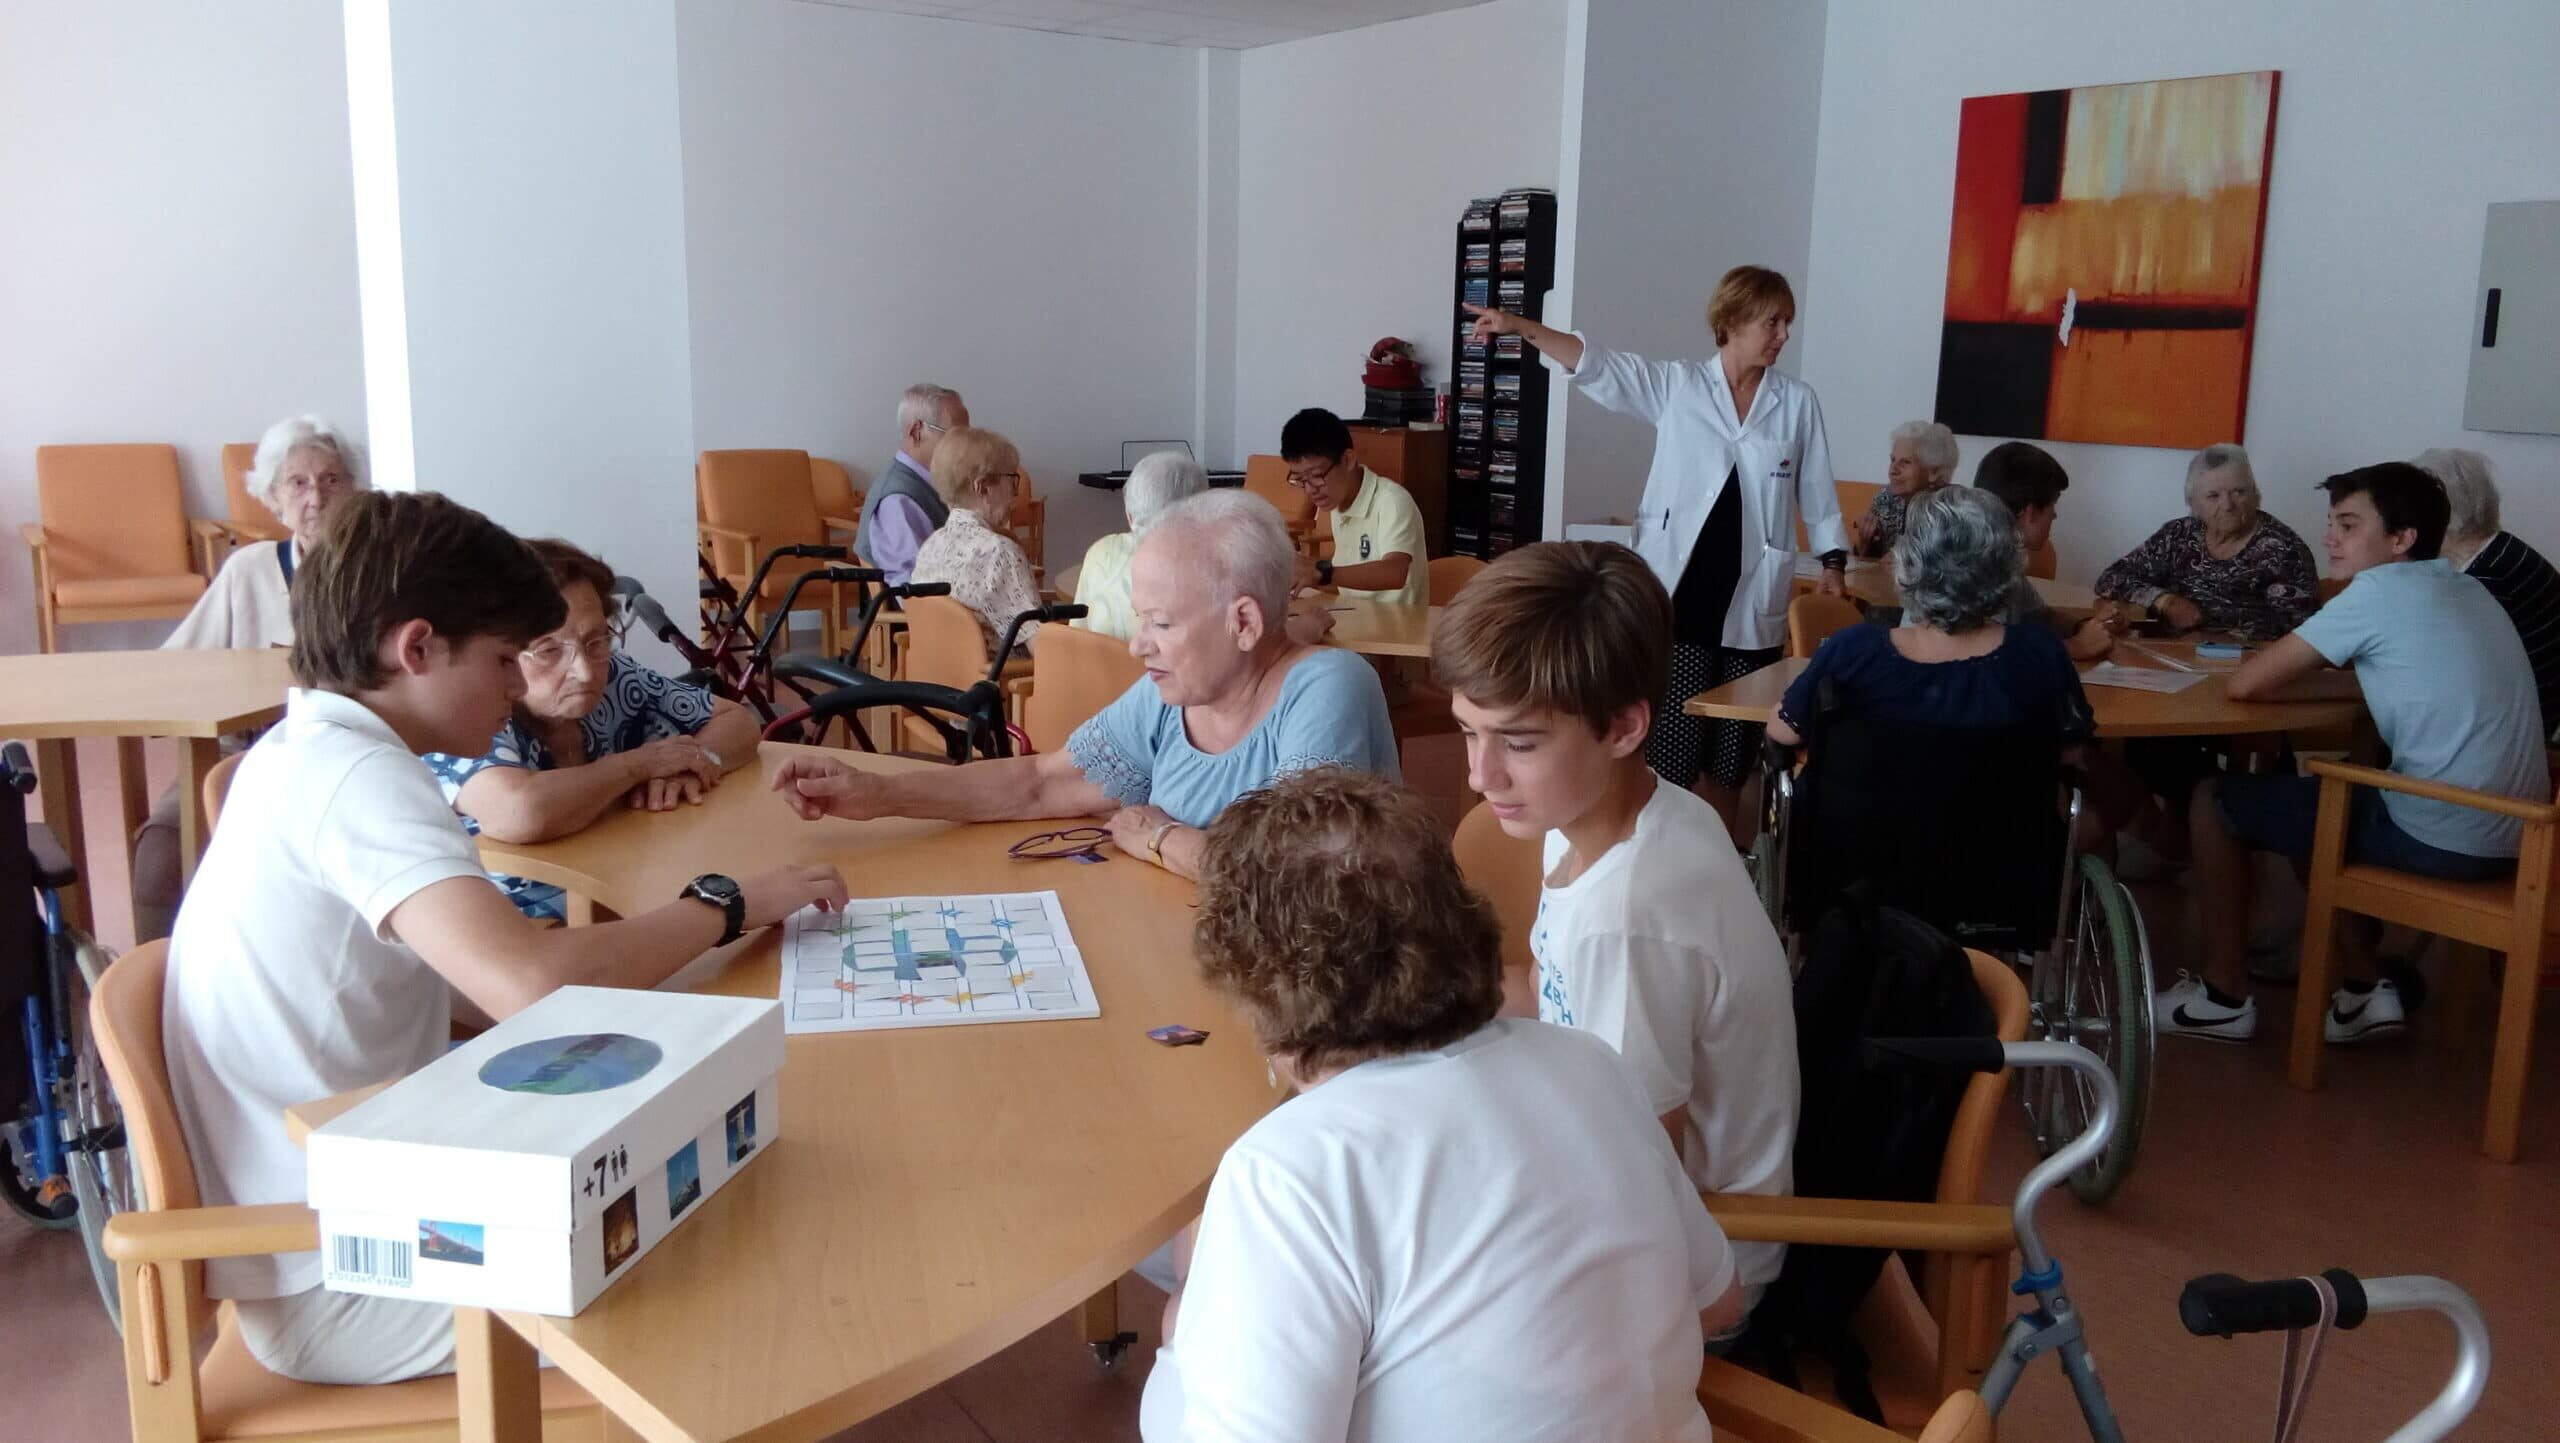 High school students design table games for the elderly